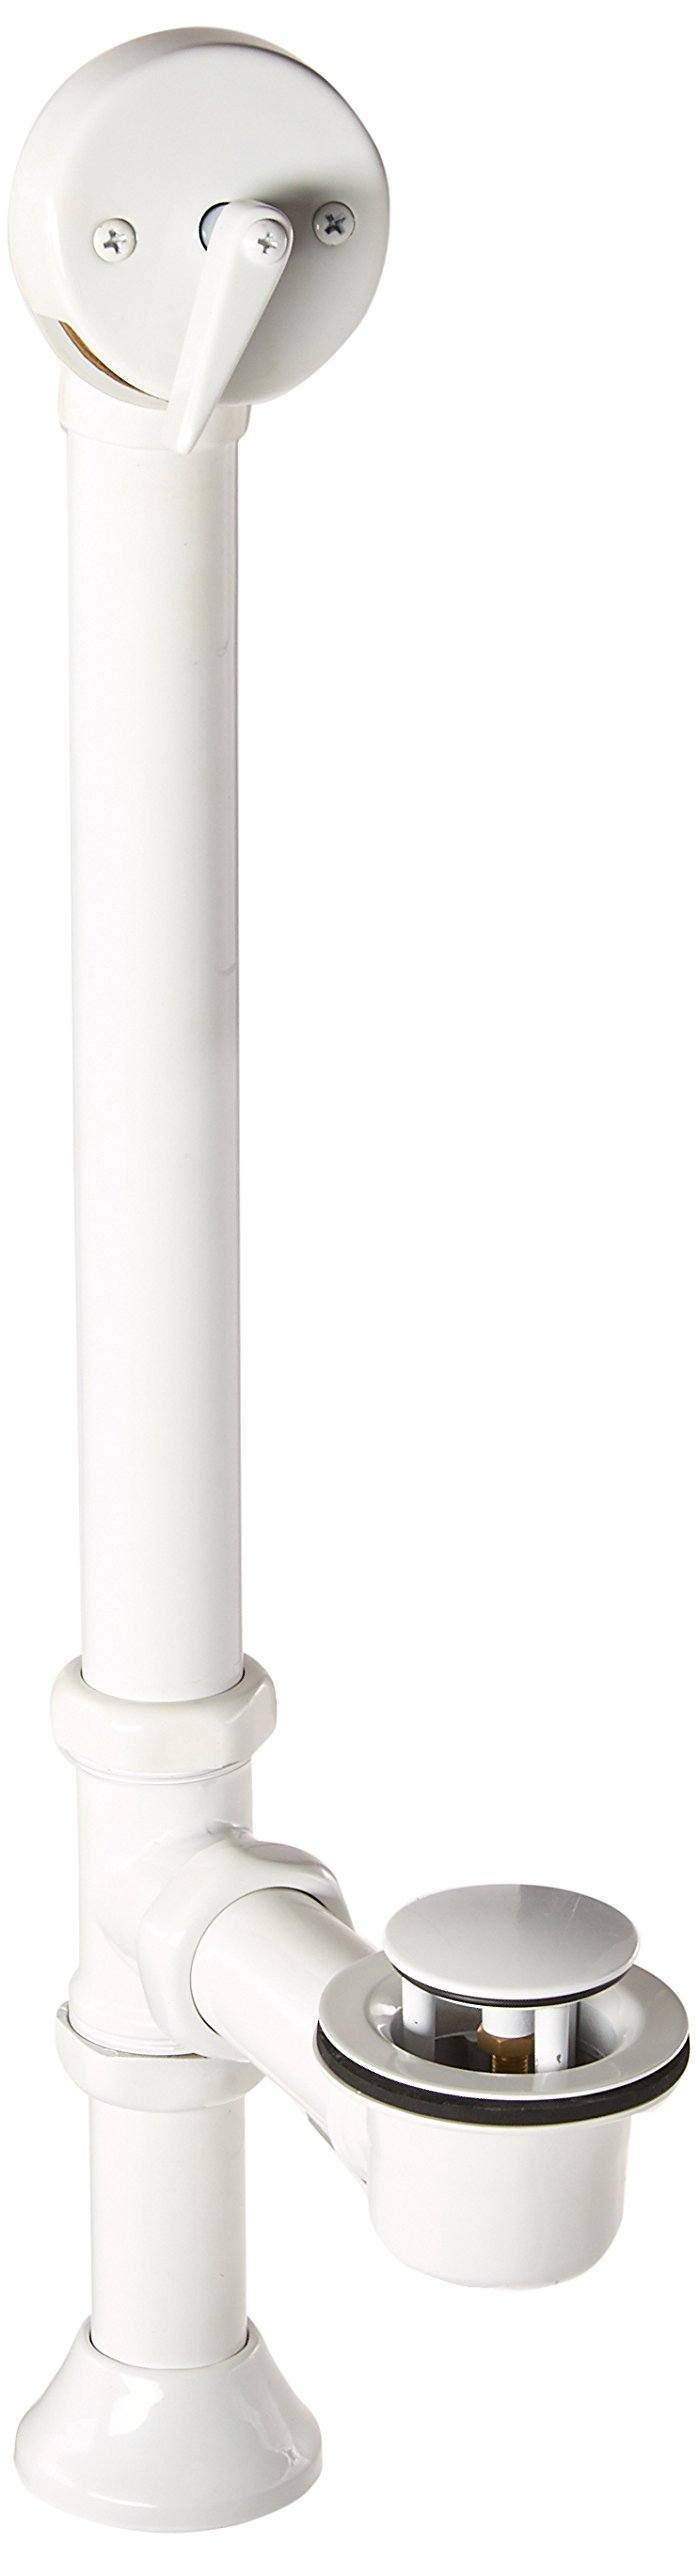 KOHLER K-7178-0 Clearflo Decorative 1-1/2 Inch Adjustable Pop-Up Bath Drain for 5-Feet Whirlpool with Tailpiece, White